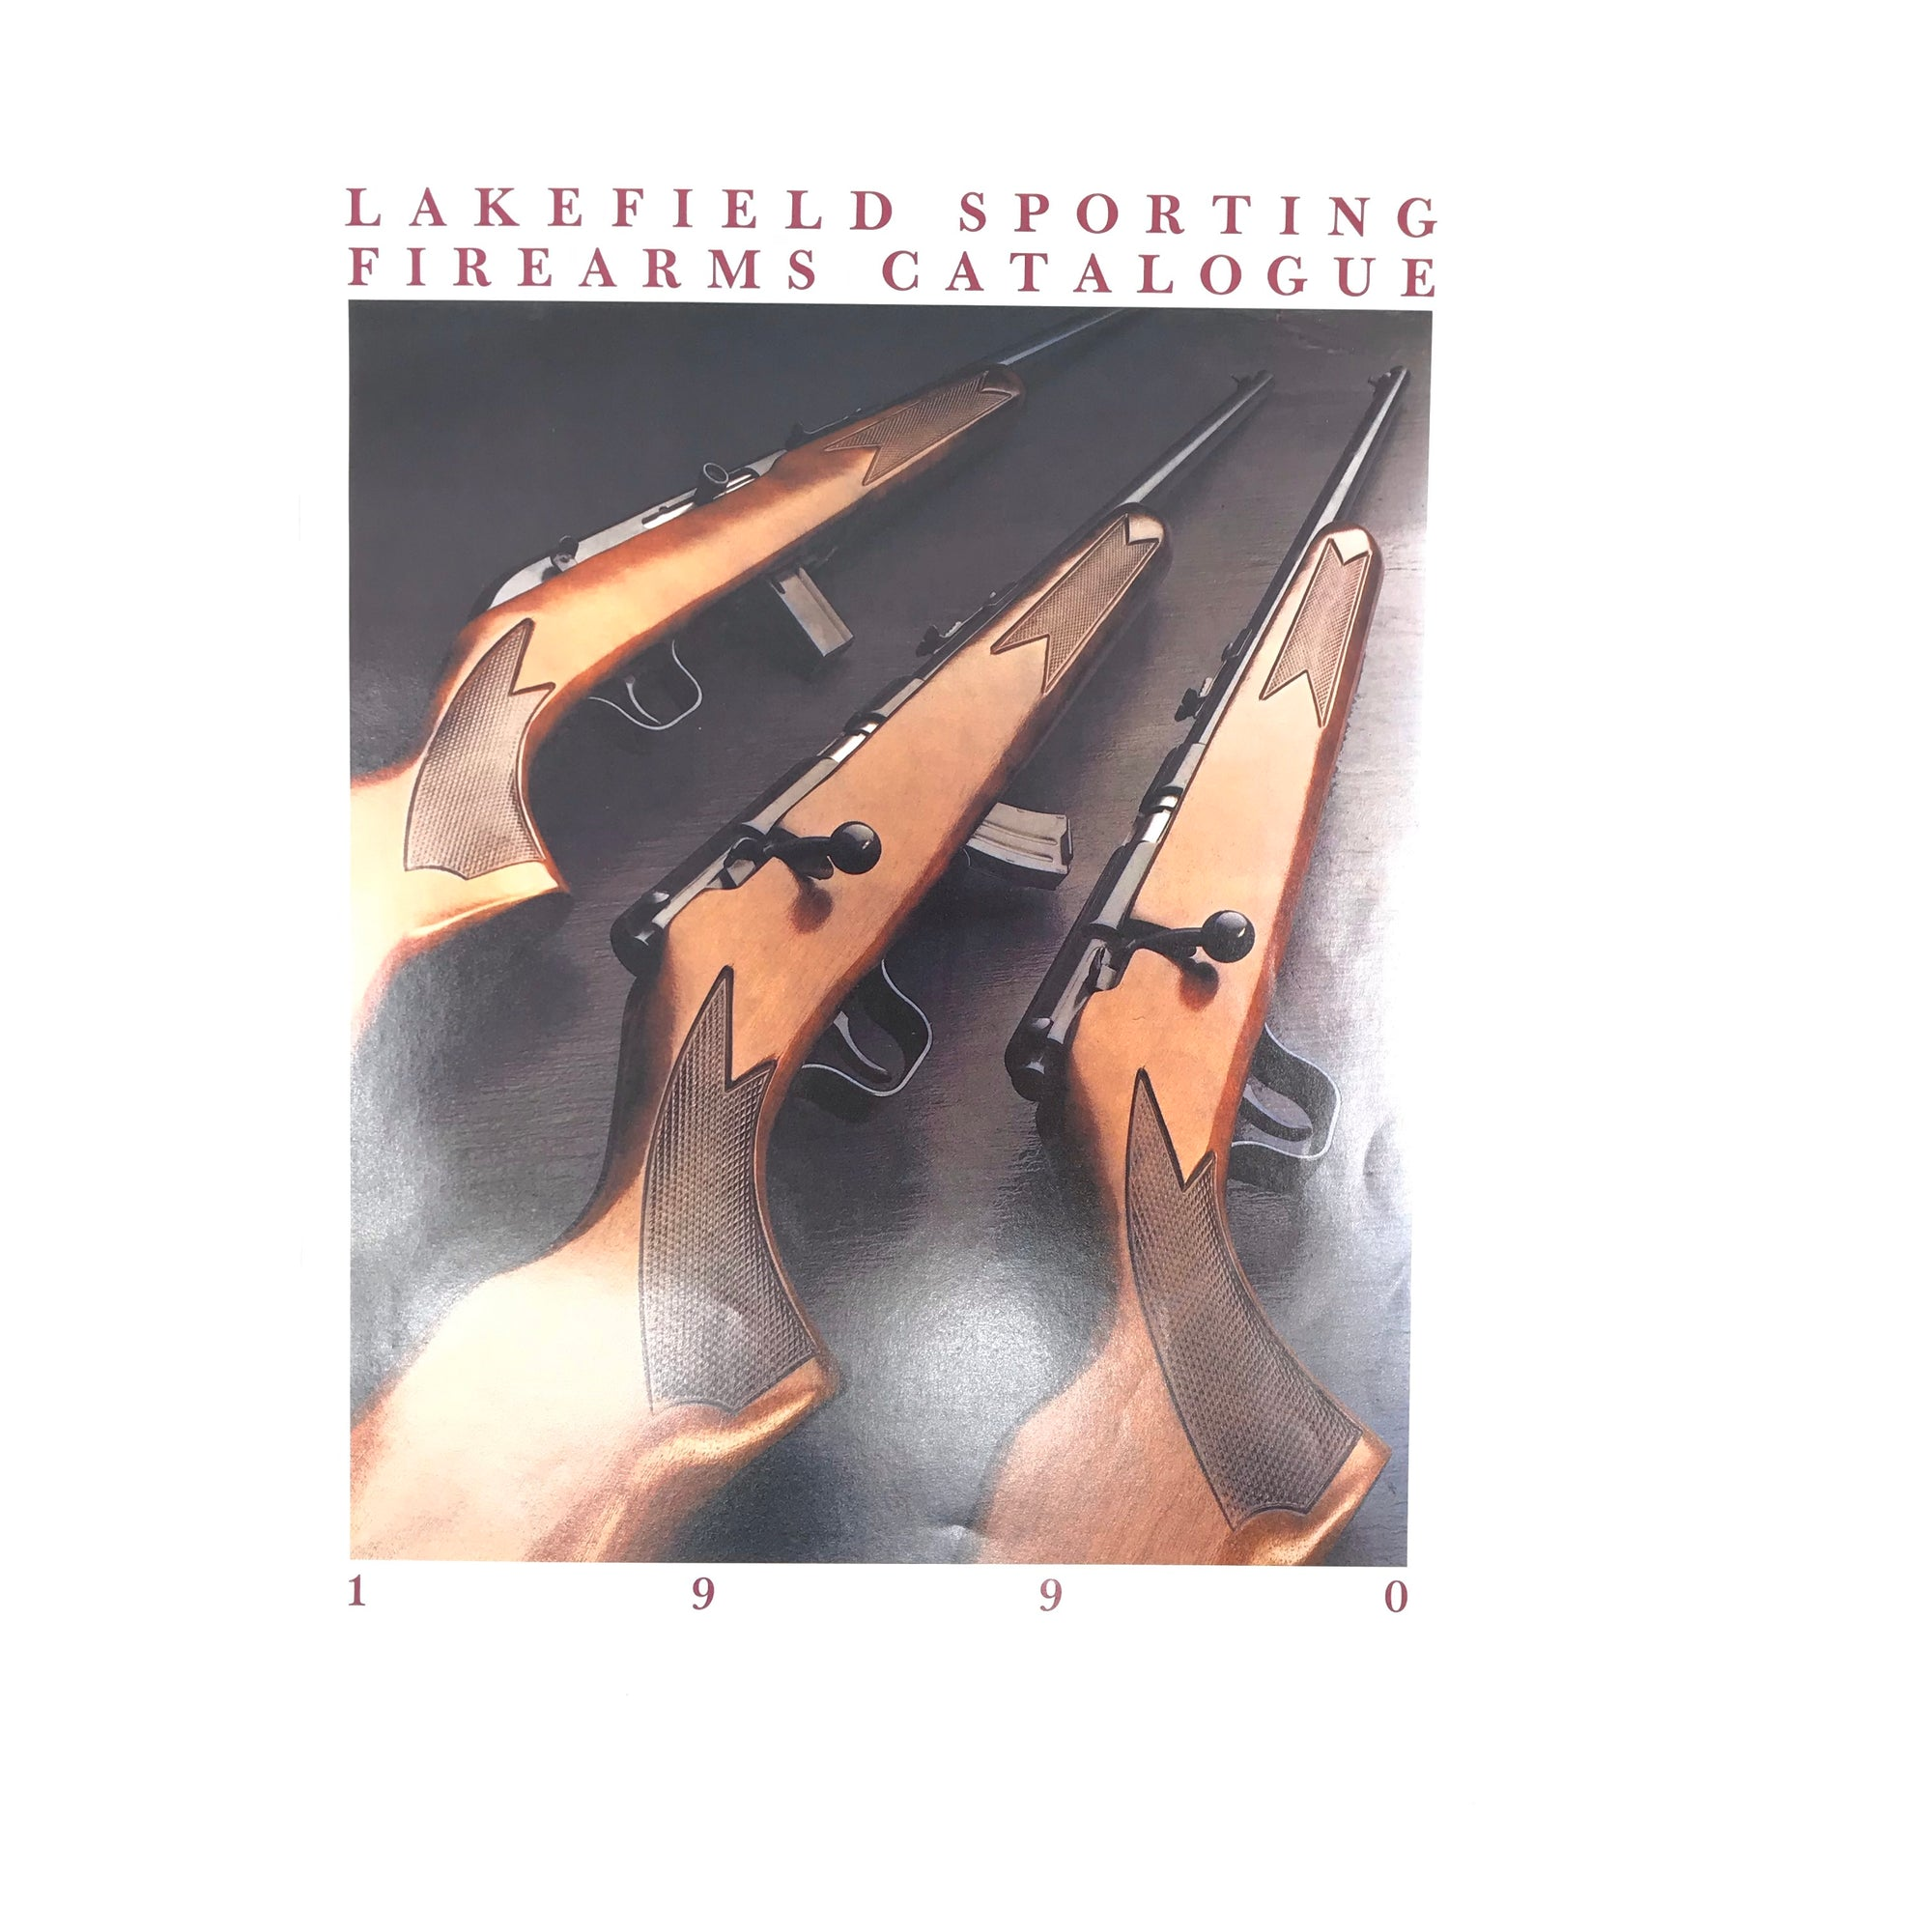 Lakefield Sporting Firearms Catalogue 1990